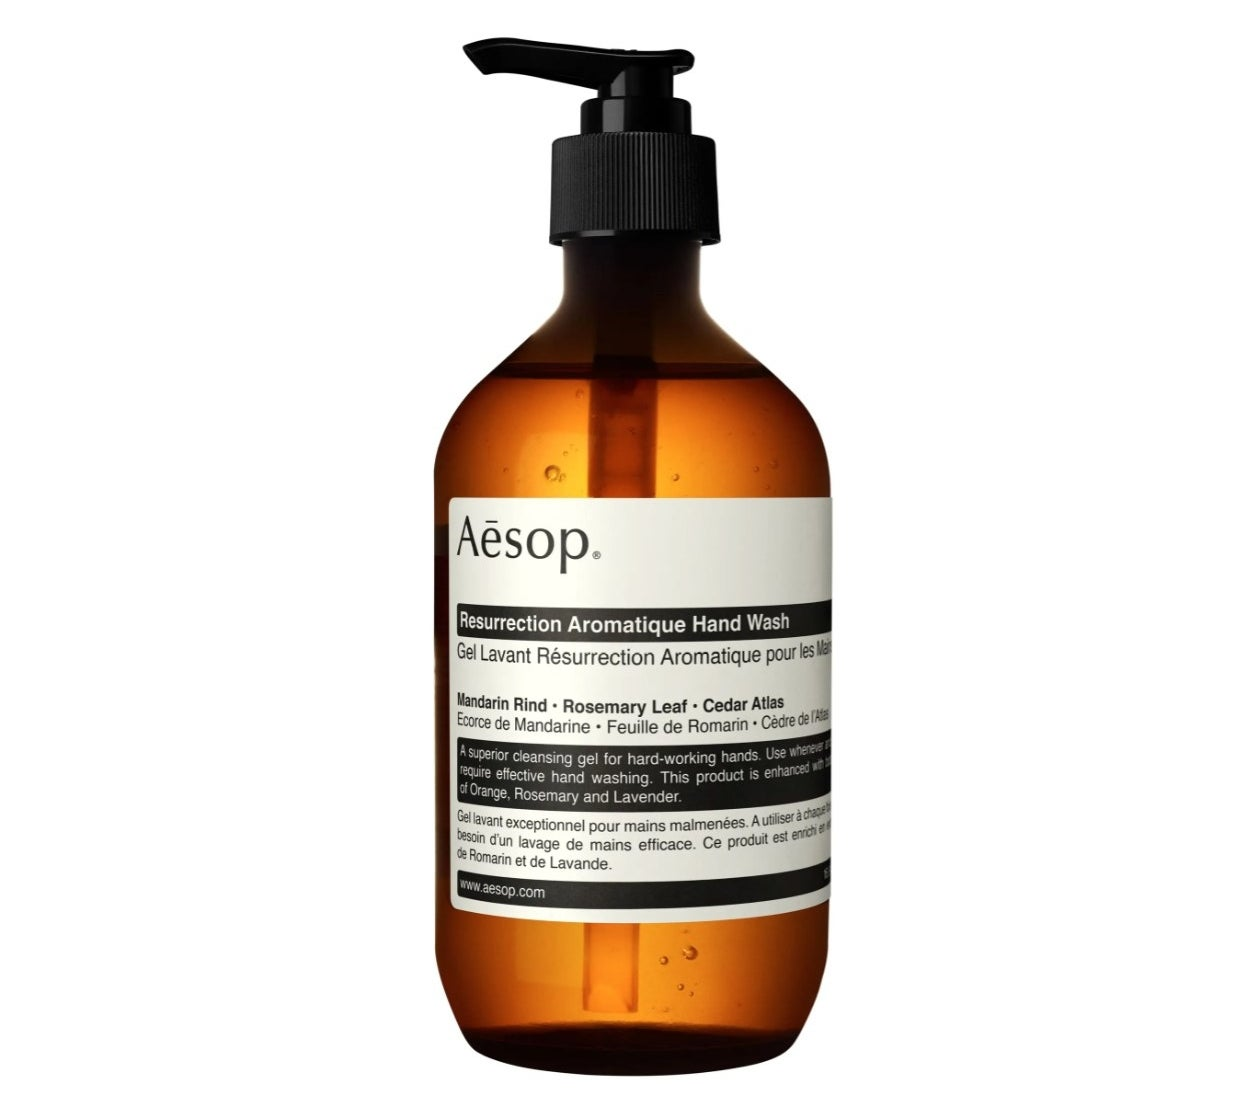 The Aesop hand soap with a pump